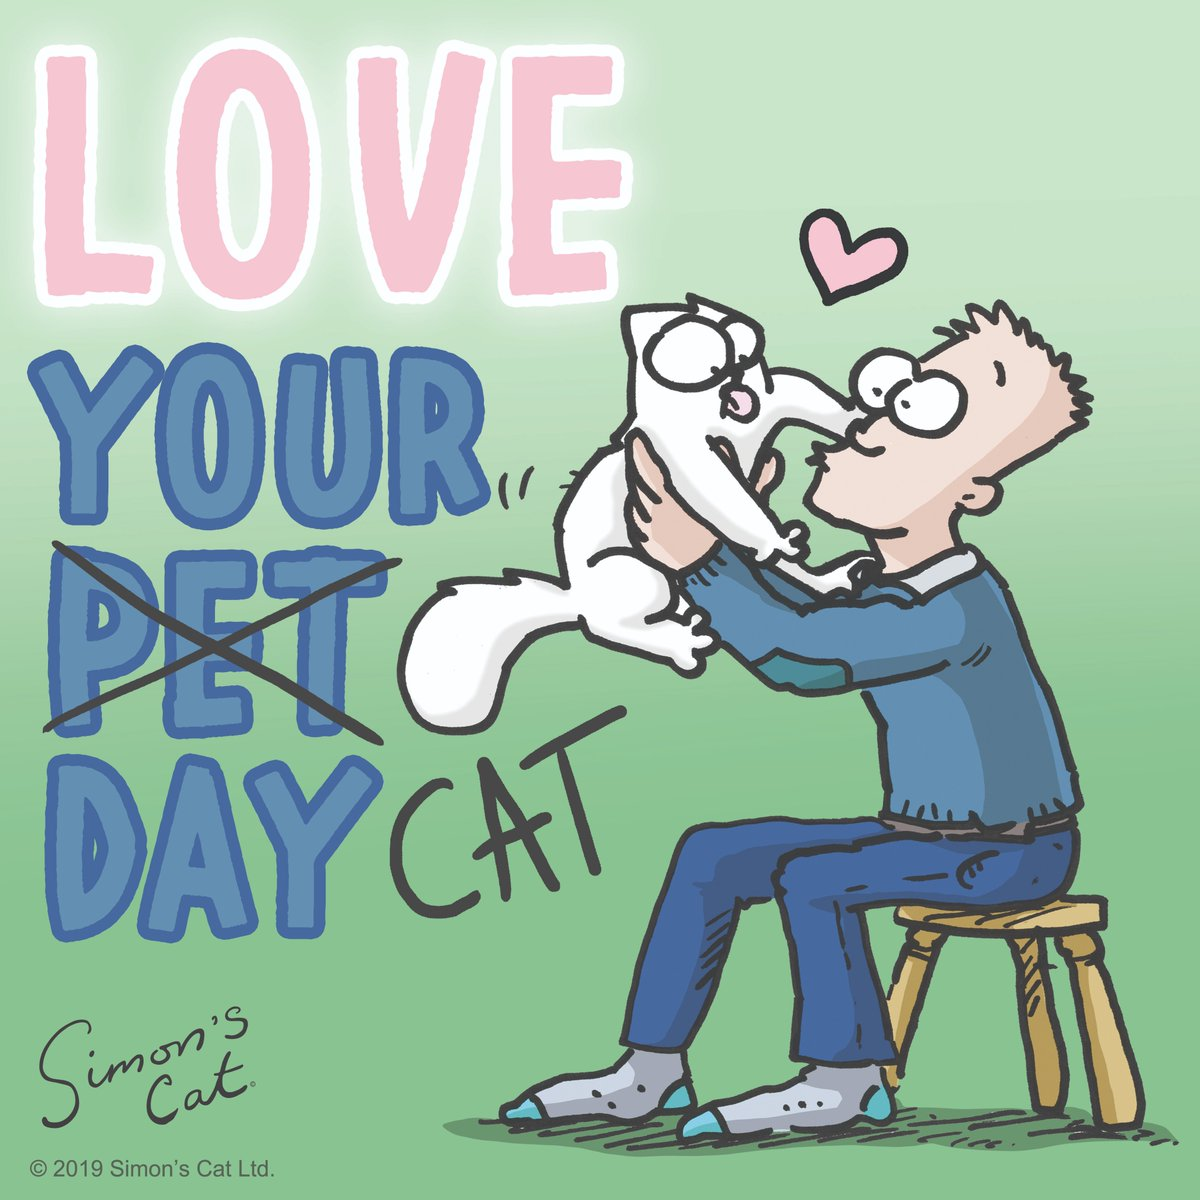 Every day is #LoveYourPetDay 🥰